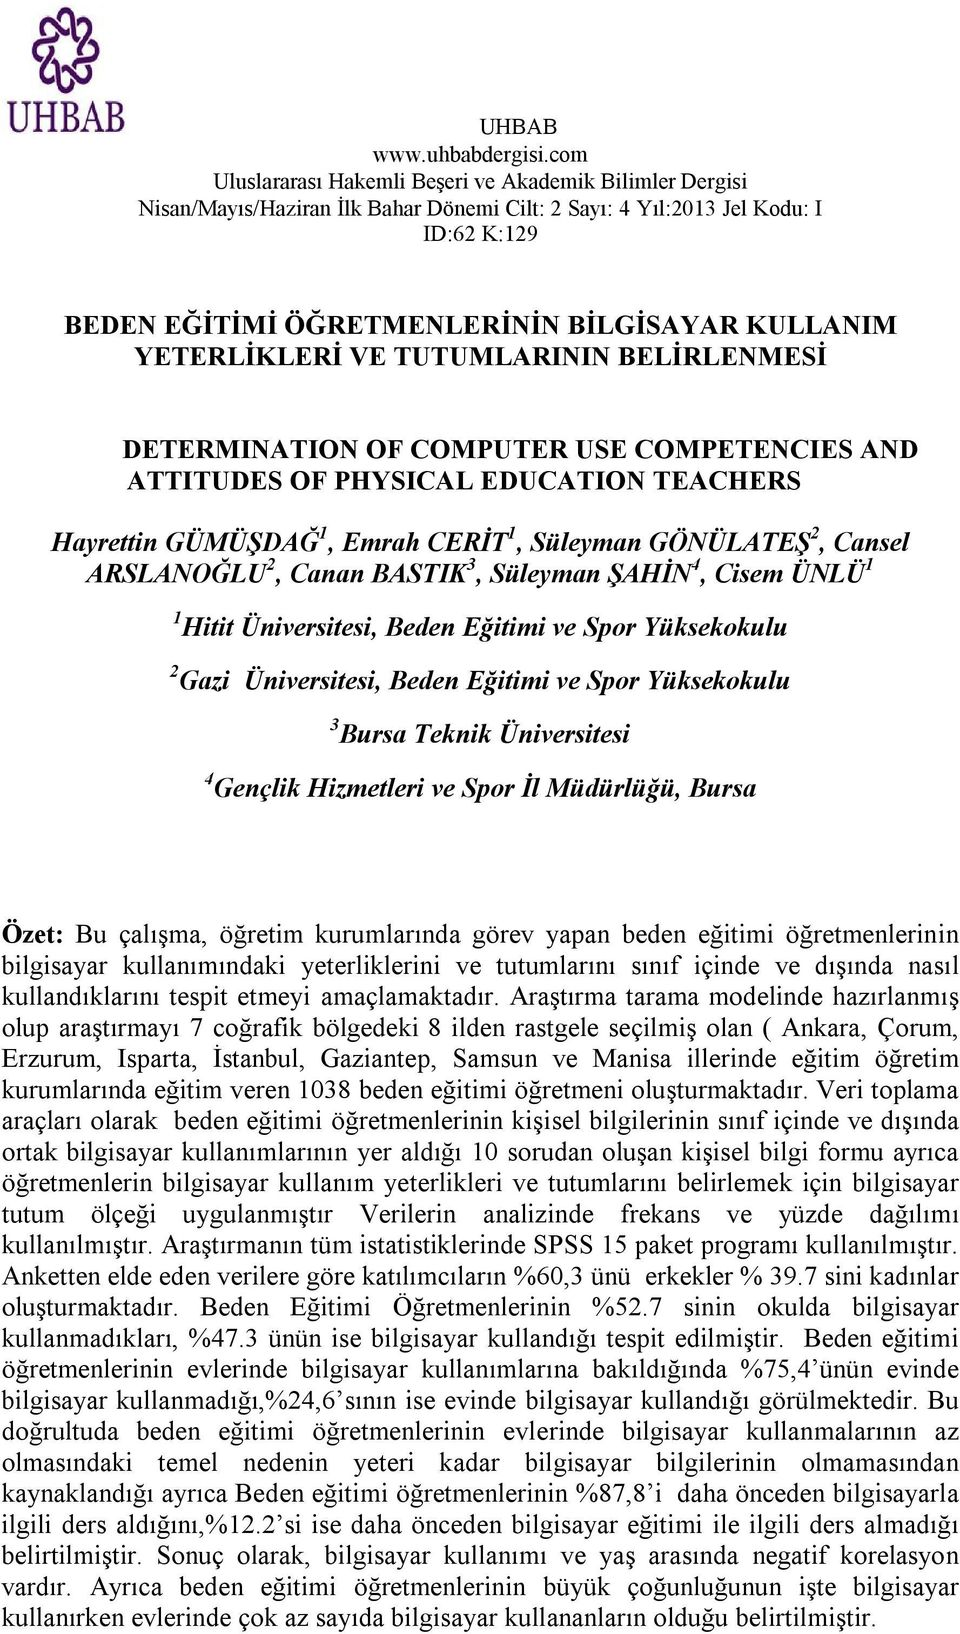 YETERLİKLERİ VE TUTUMLARININ BELİRLENMESİ DETERMINATION OF COMPUTER USE COMPETENCIES AND ATTITUDES OF PHYSICAL EDUCATION TEACHERS Hayrettin GÜMÜŞDAĞ 1, Emrah CERİT 1, Süleyman GÖNÜLATEŞ 2, Cansel